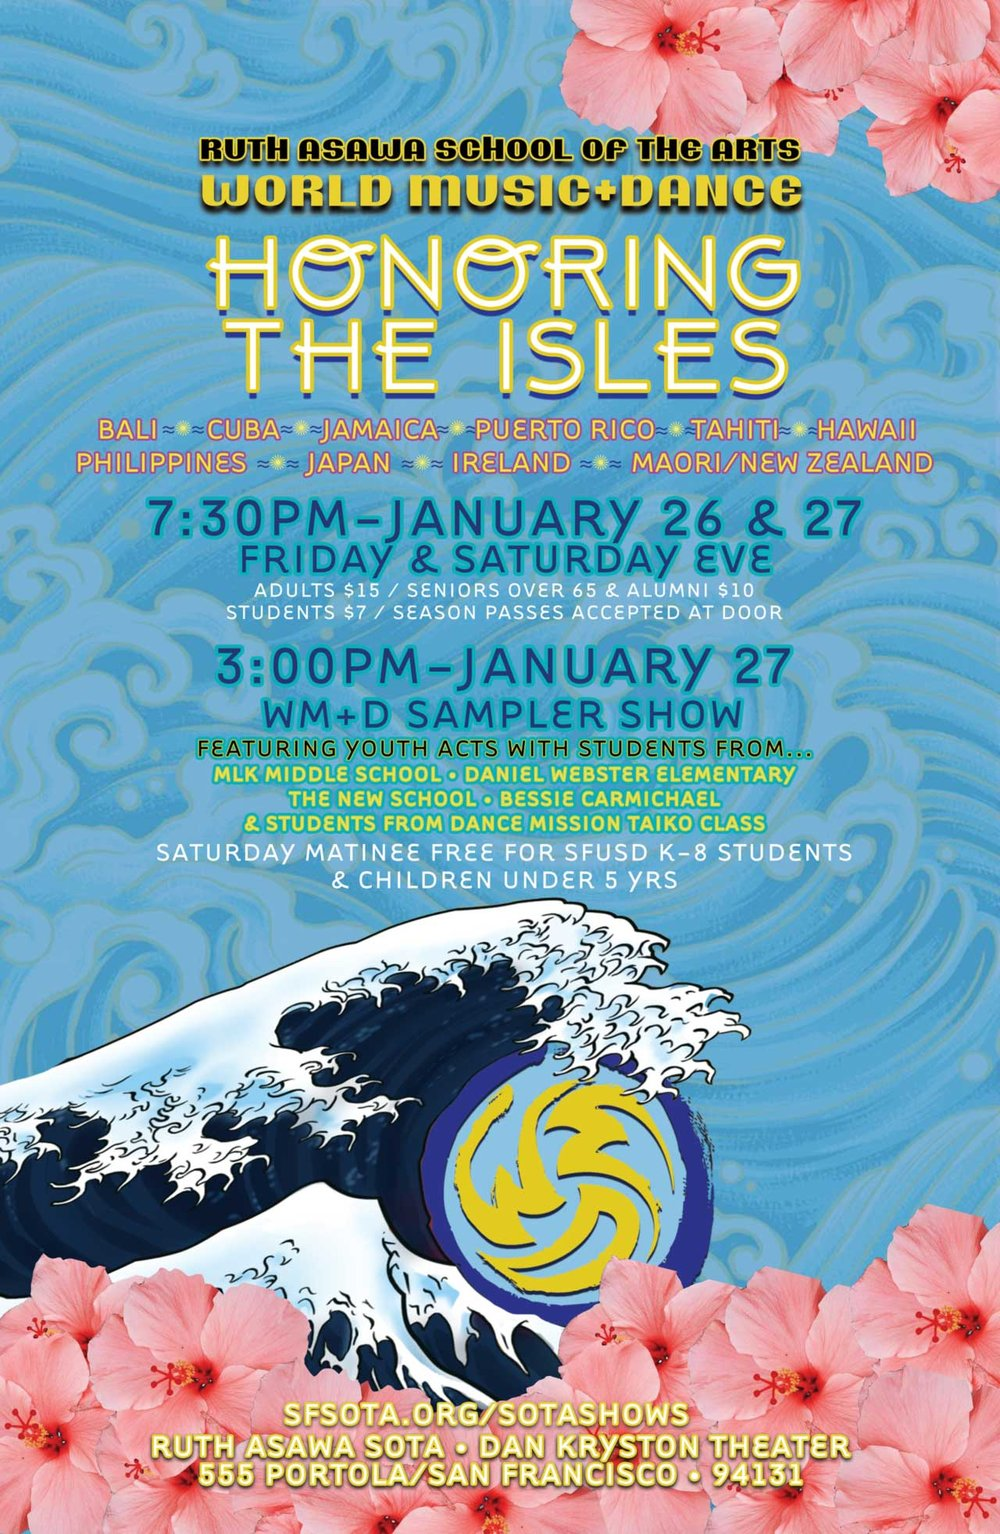 CALENDARWORLD MUSIC+DANCE • HONORING THE ISLES